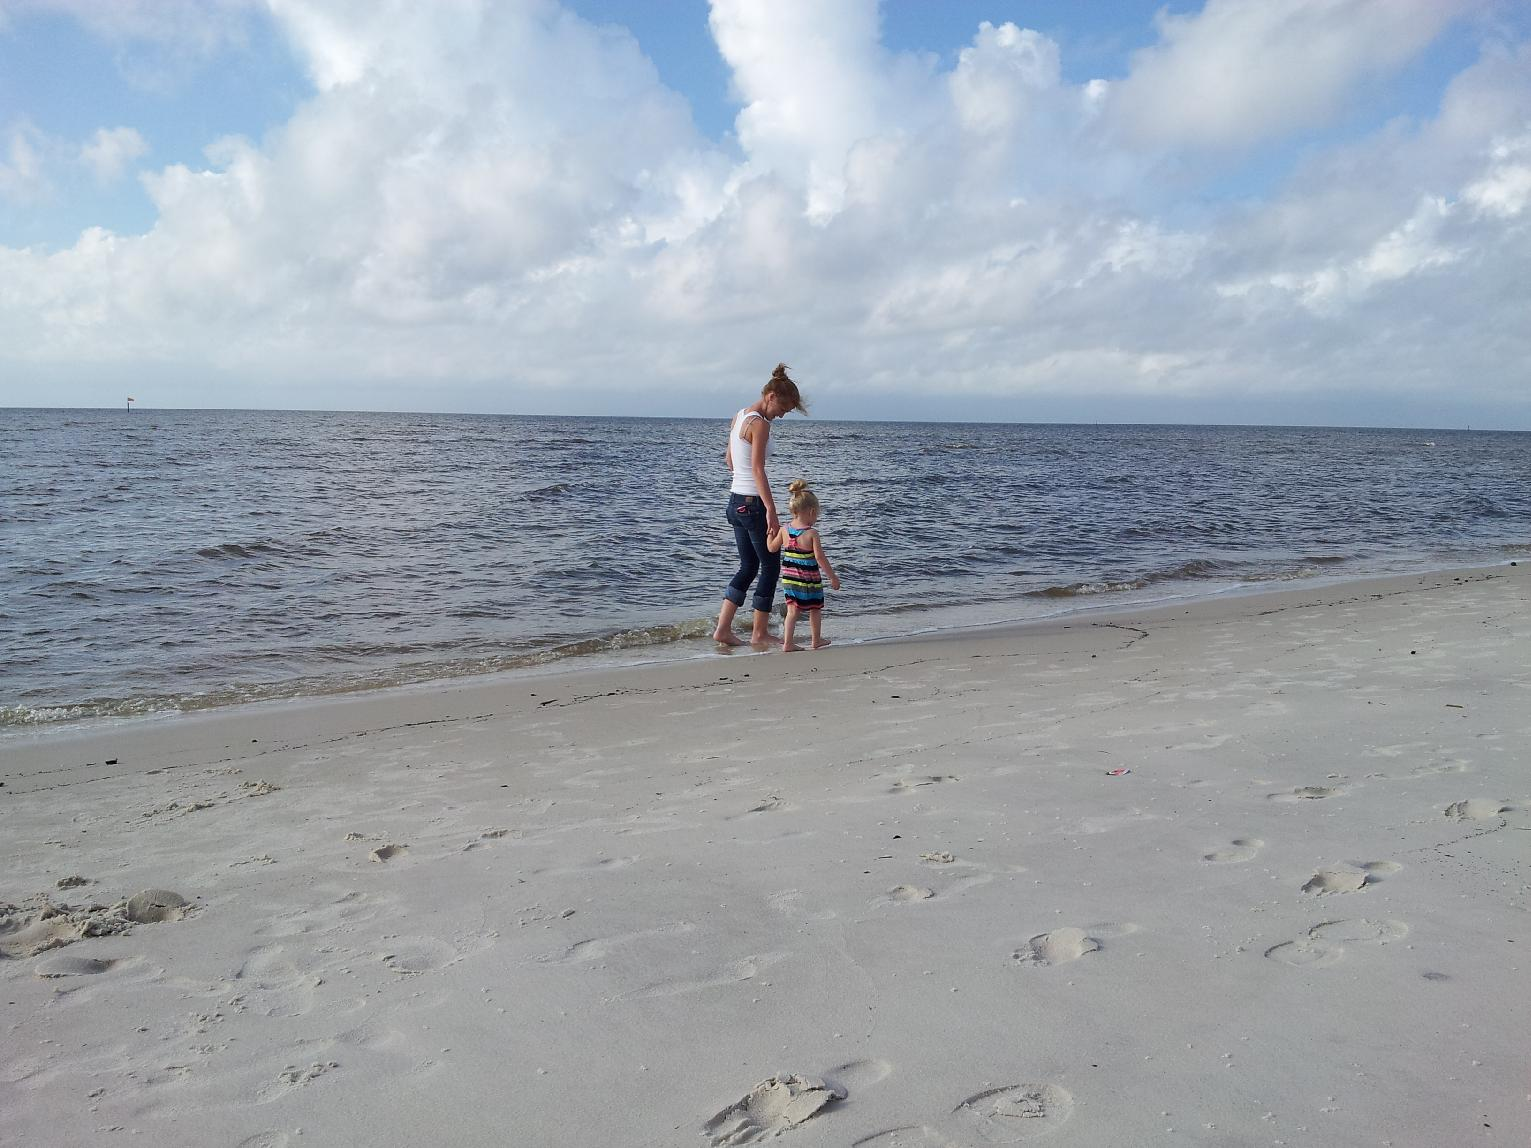 Robyn Comley, 19, and her 2-and-half-year-old niece, Teegan Greer, walk along the beach in Biloxi, Miss., on Saturday, Oct. 5, 2013. Tropical Storm Karen, though still churning in the Gulf of Mexico, weakened overnight. For the most part, it was business as usual on the Mississippi Gulf Coast (AP Photo/Holbrook Mohr)